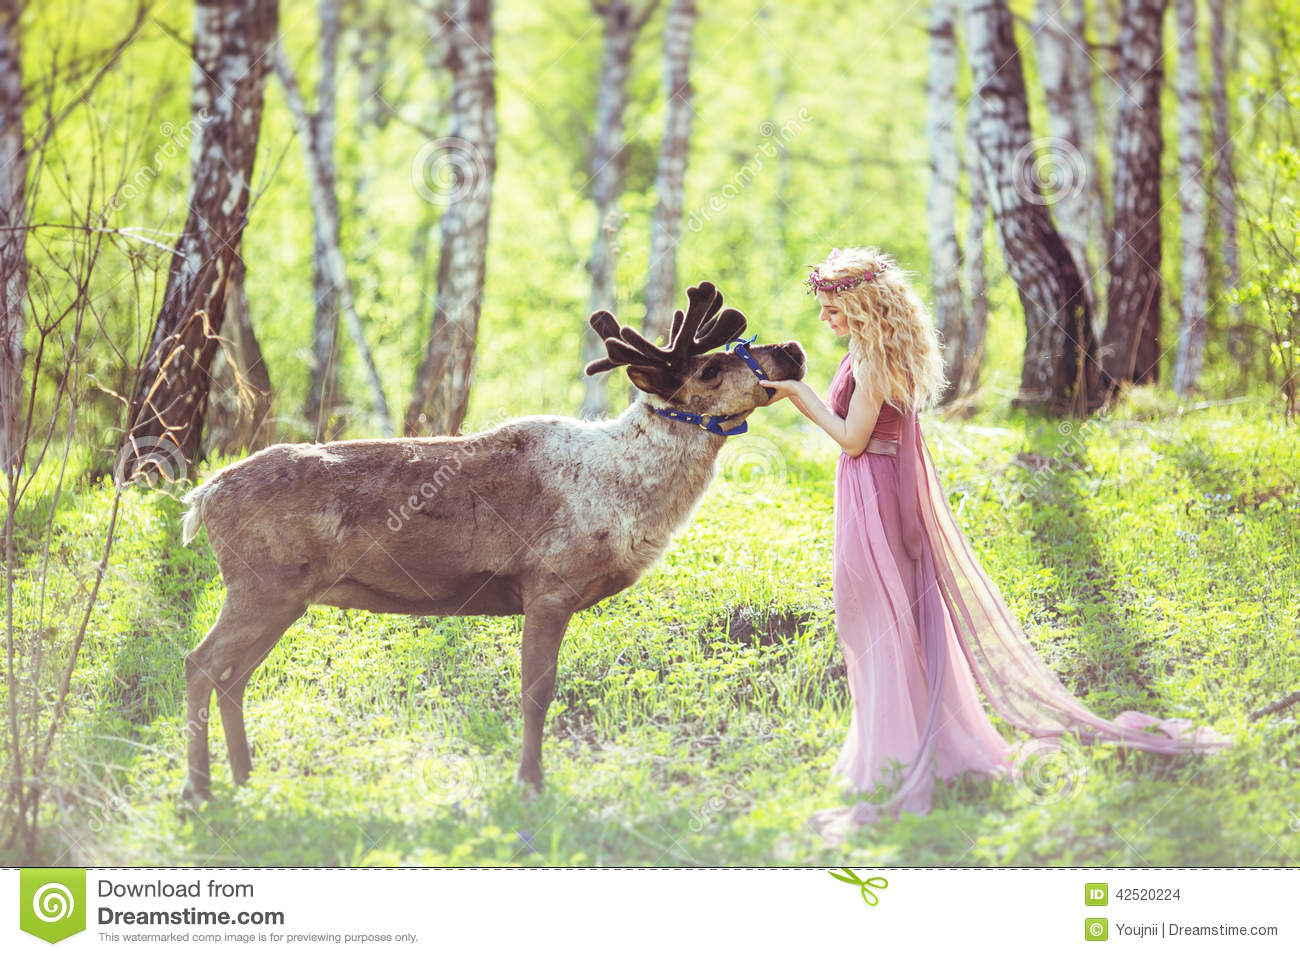 Small Cute Baby Wallpaper Download Girl In Fairy Dress And Reindeer In The Forest Stock Photo